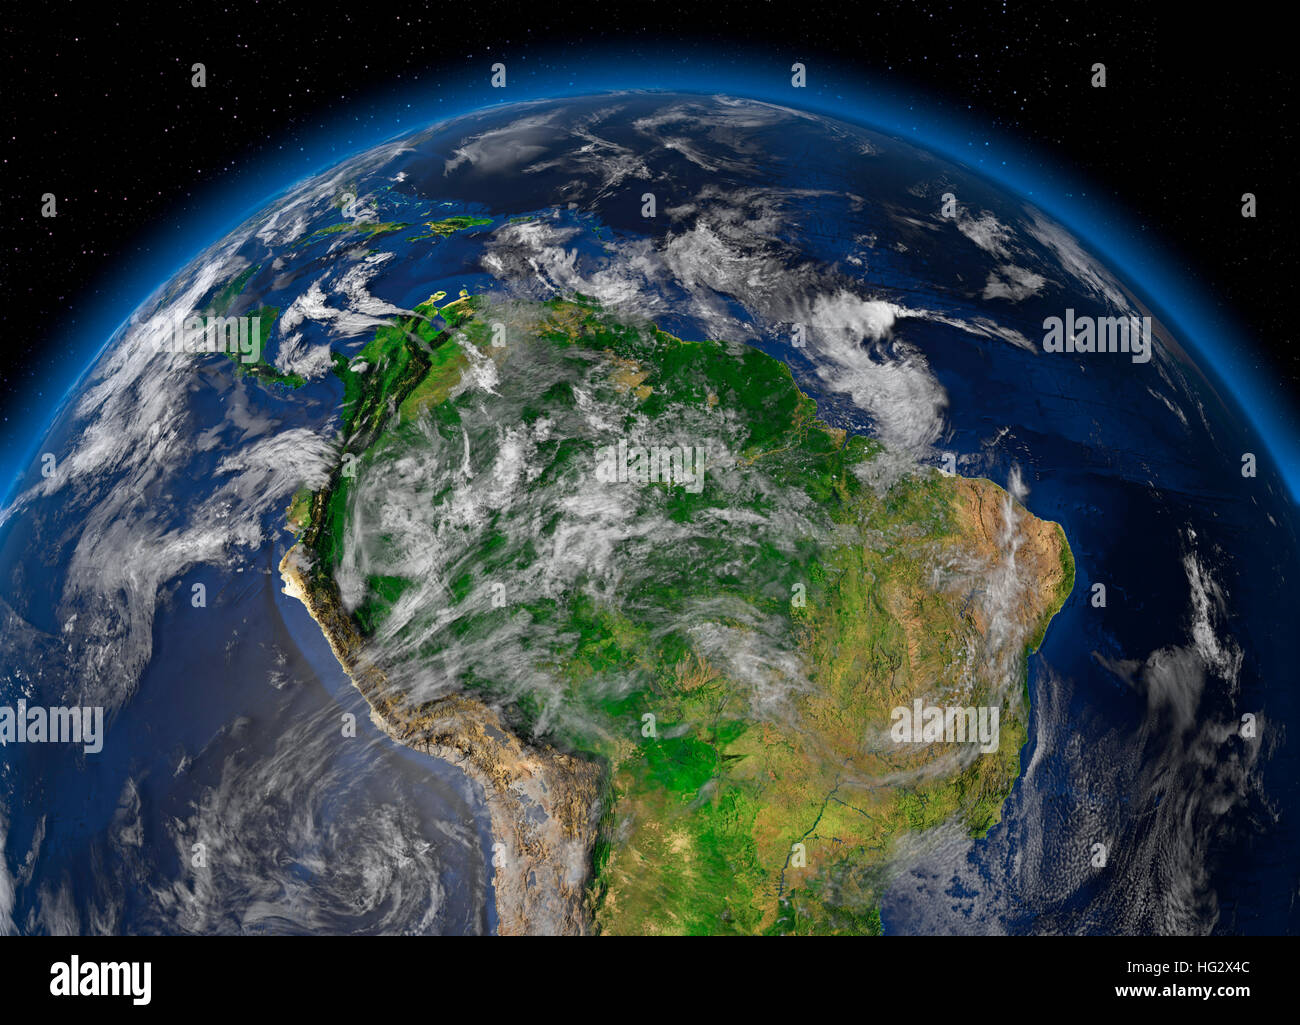 Earth viewed from space showing Amazon rainforest. Realistic digital illustration including relief map hill shading - Stock Image